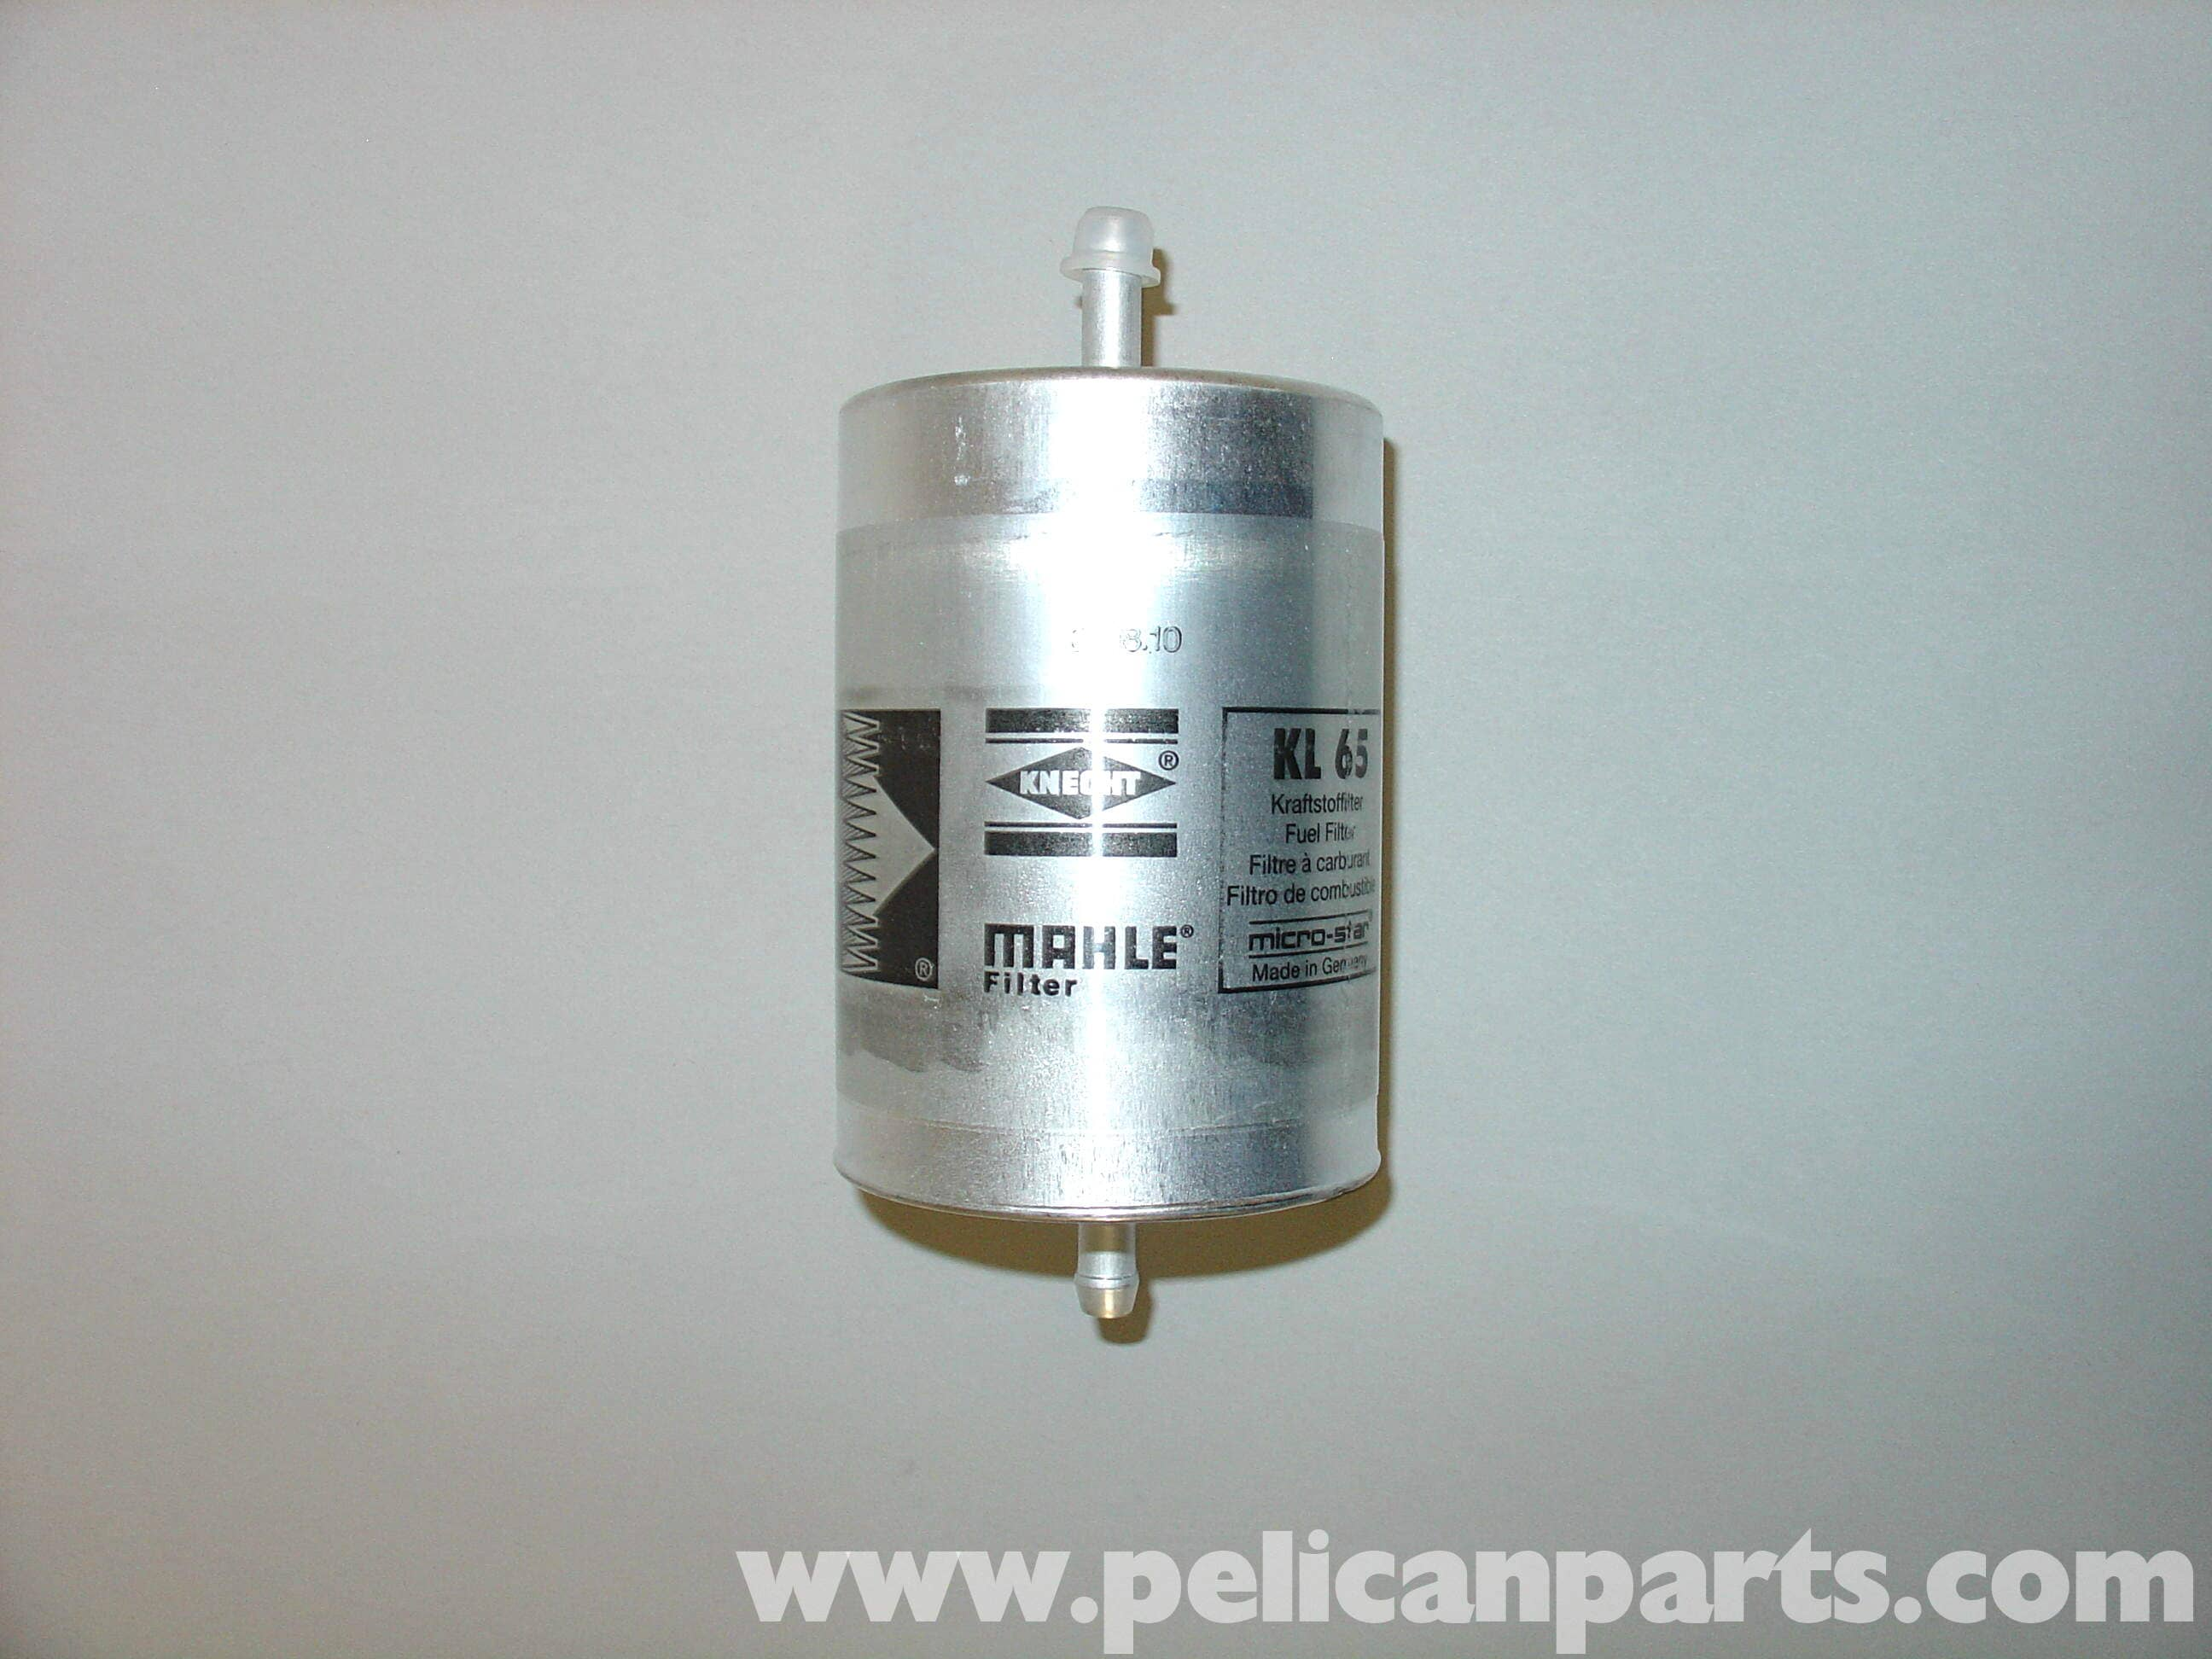 Mercedes Benz W210 Fuel Filter Replacement 1996 03 E320 E420 Cabrio Large Image Extra